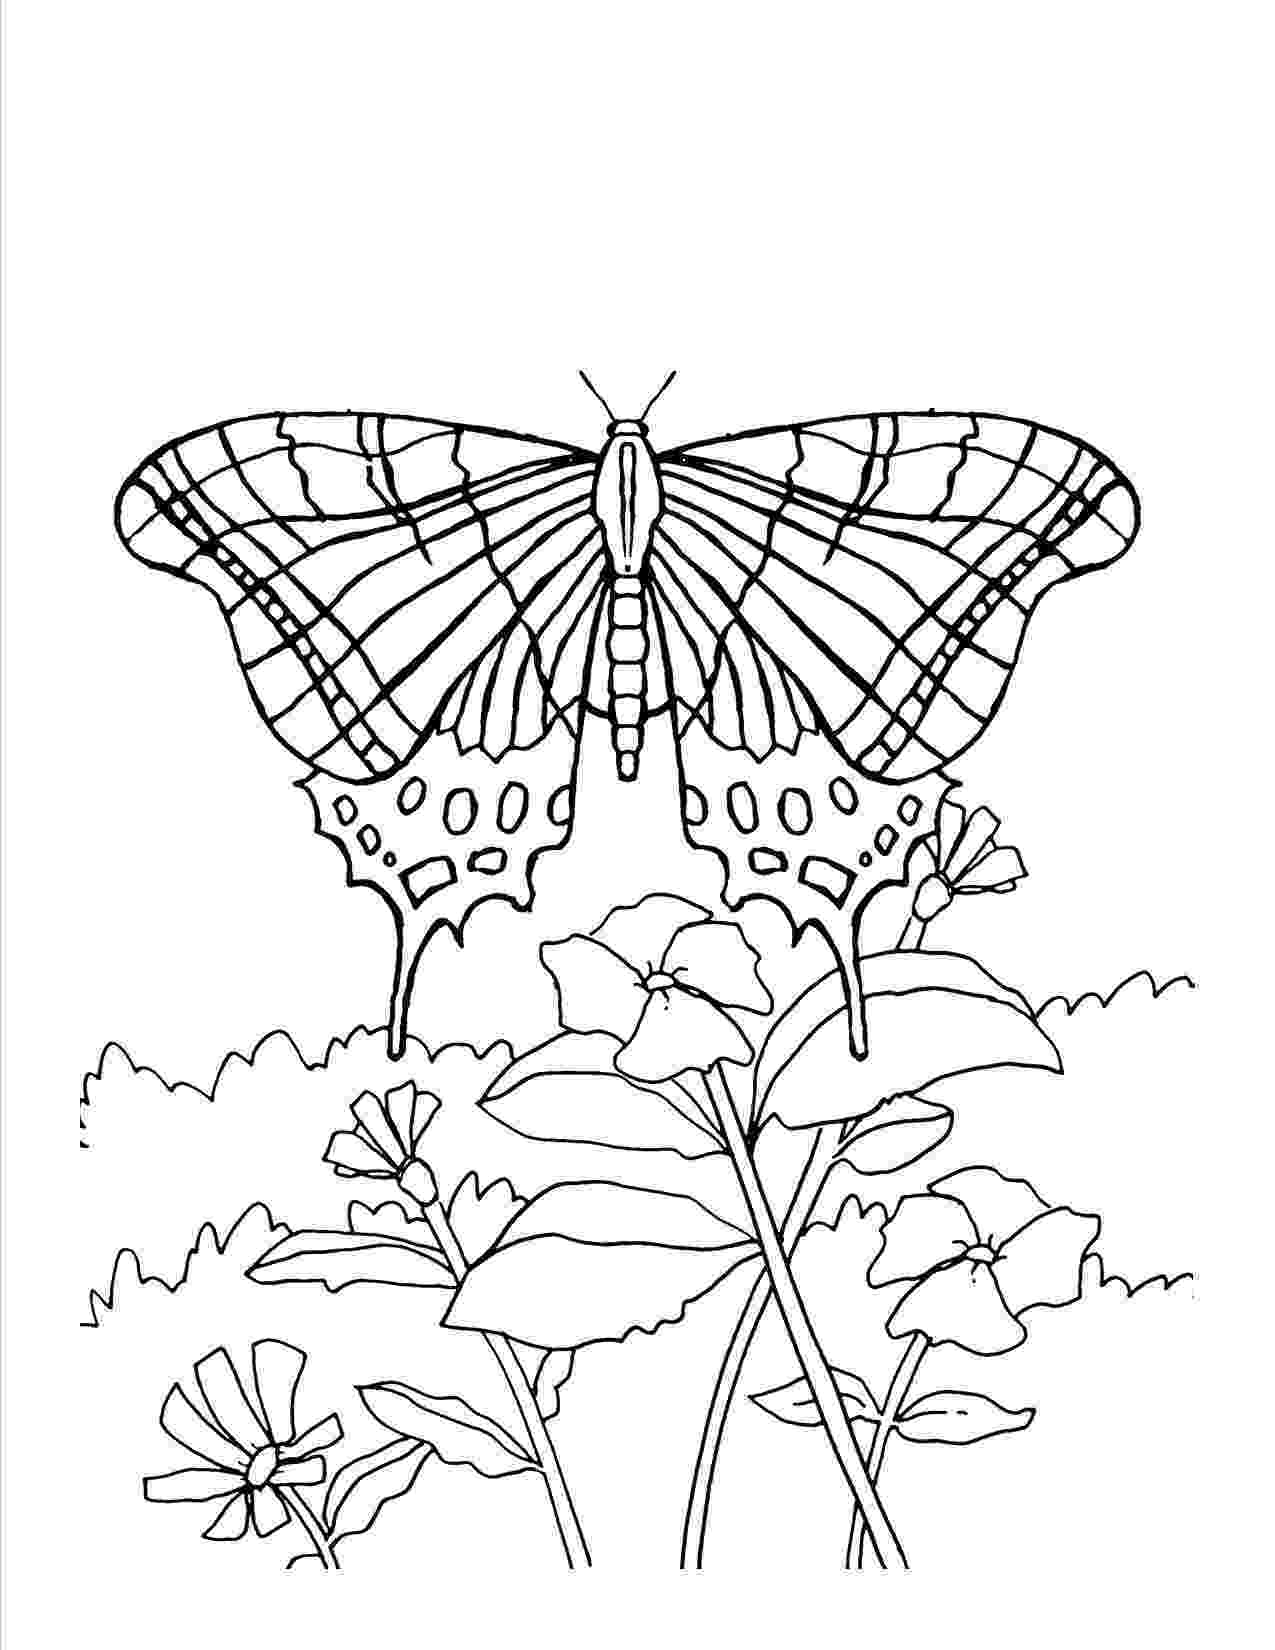 coloring pages of butterflies and flowers free printable butterfly coloring pages for kids flowers butterflies and of pages coloring